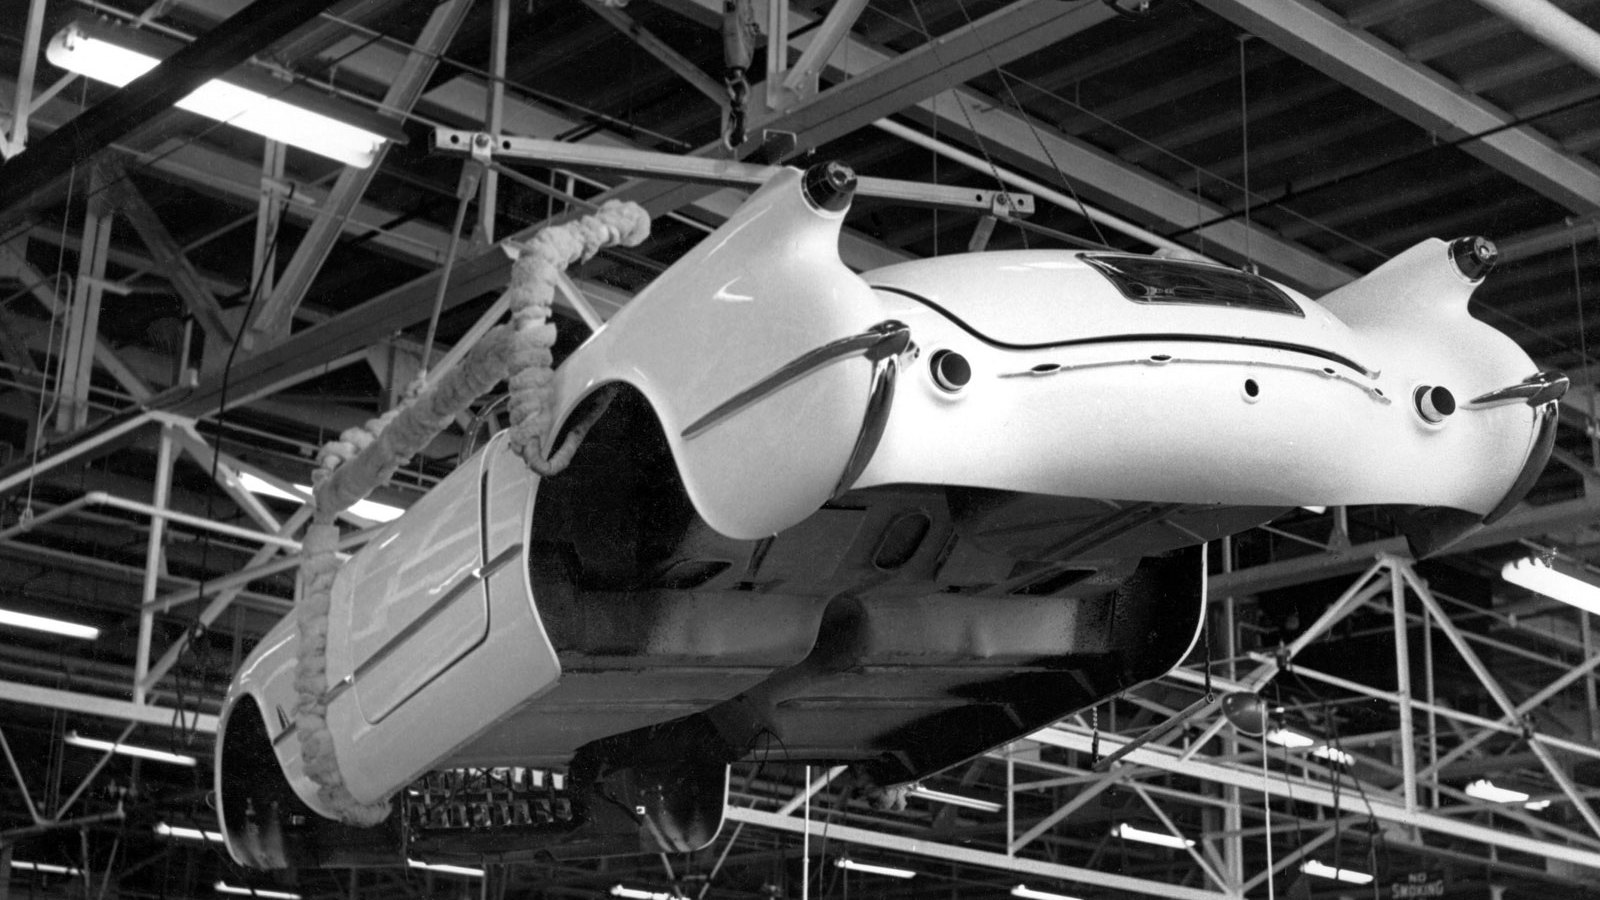 Production of the 1953 Chevrolet Corvette, the very first Corvette